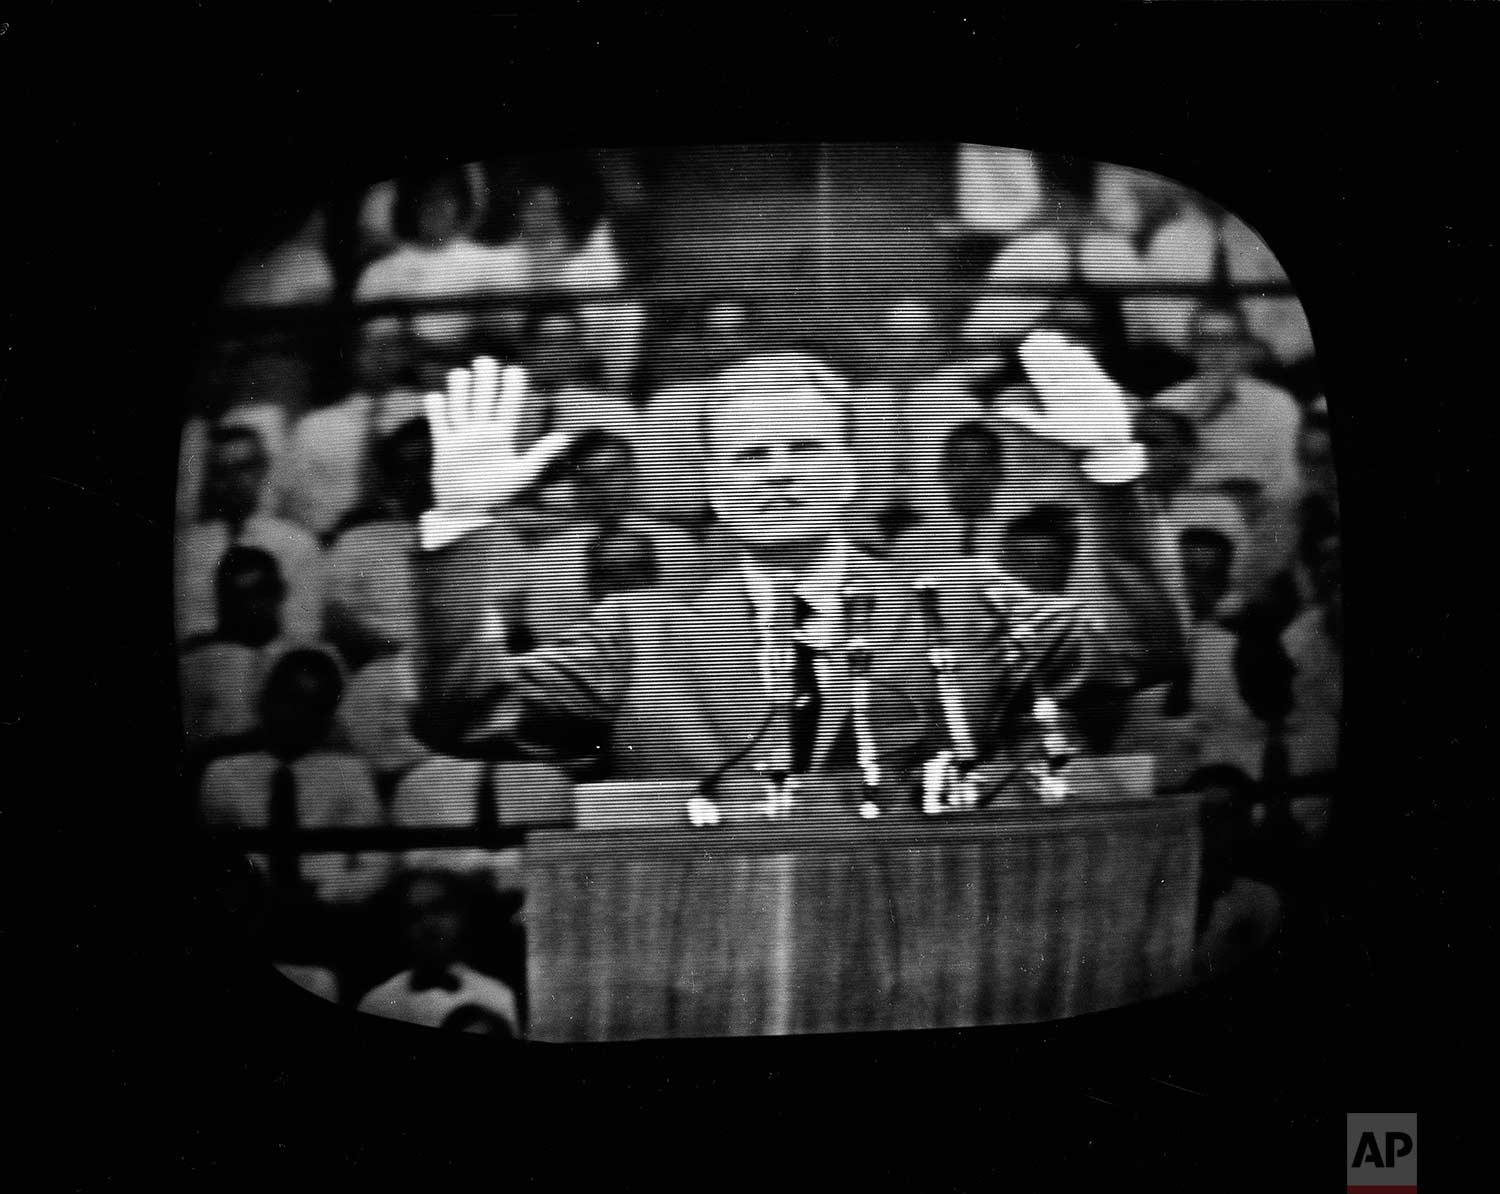 The Rev. Billy Graham appears on a television screen during a live telecast of his crusade at New York's Madison Square Garden, that a standing-room-only crowd of over 19,000 attended, June 1, 1957.(AP Photo)